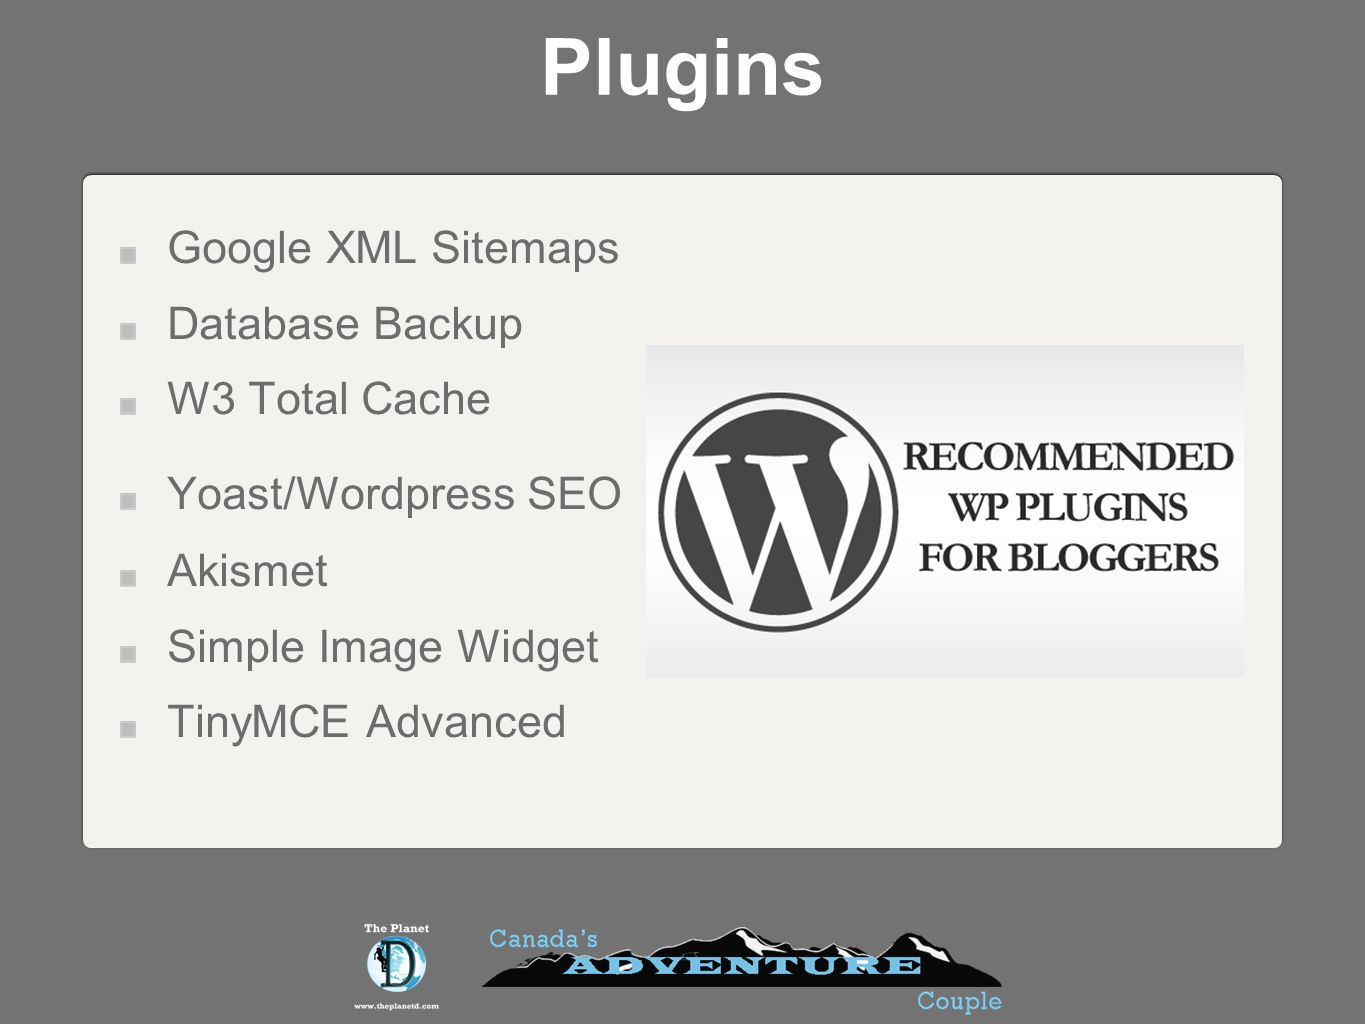 Plugins Google XML Sitemaps Database Backup W3 Total Cache Yoast/Wordpress SEO Akismet Simple Image Widget TinyMCE Advanced